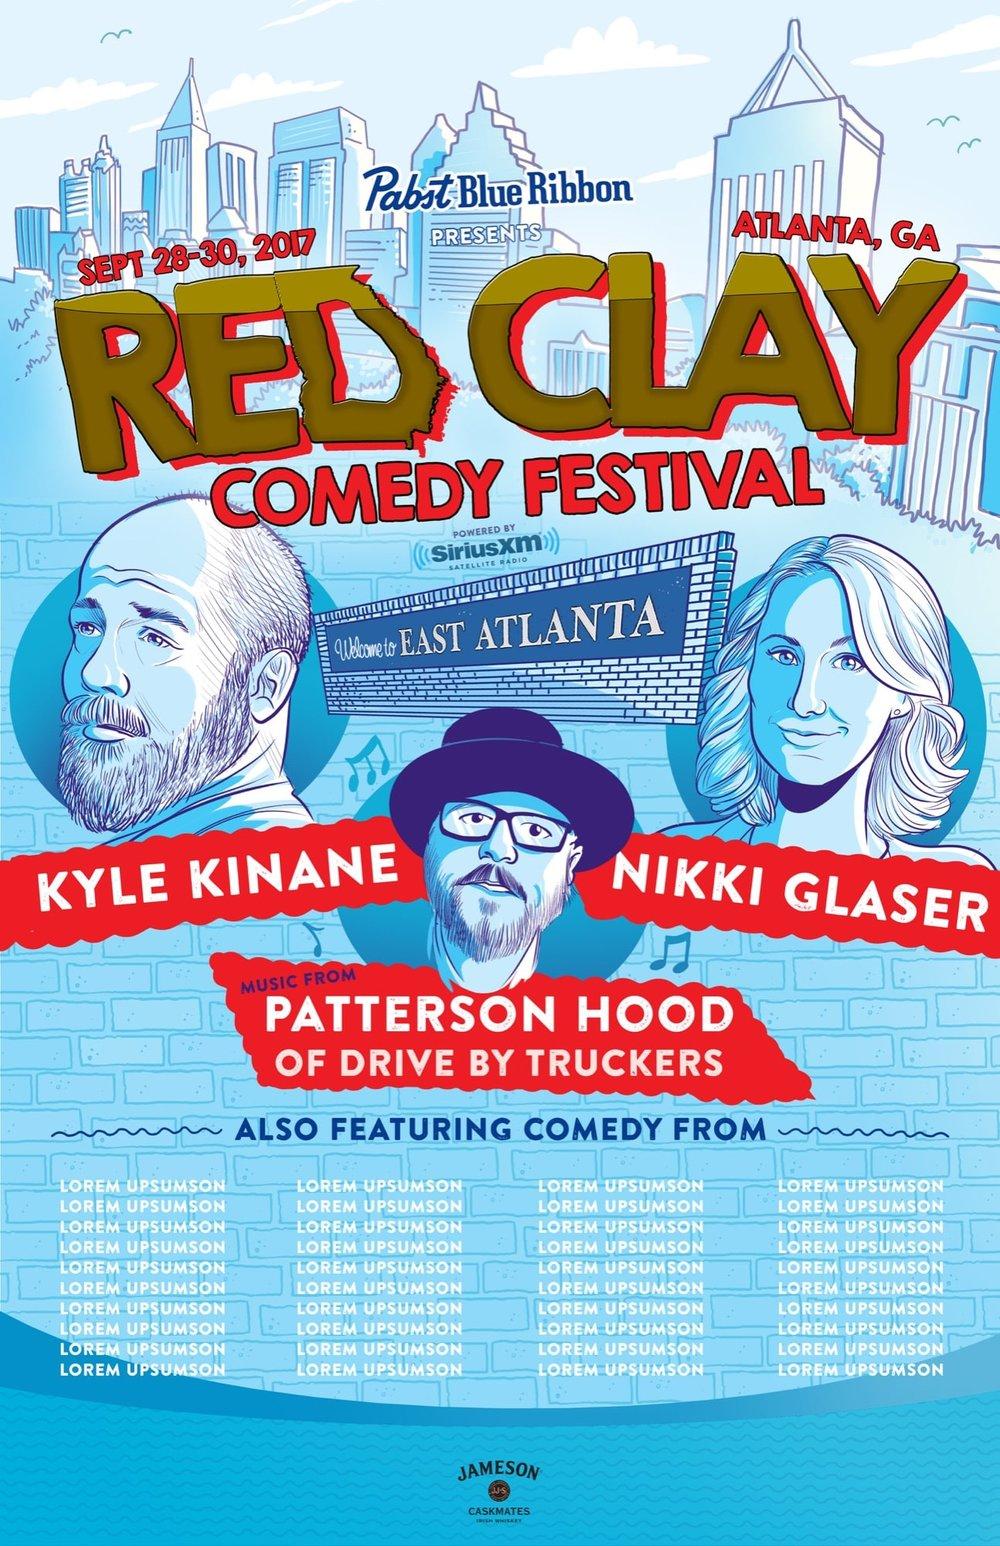 red clay comedy festival atlanta georgia